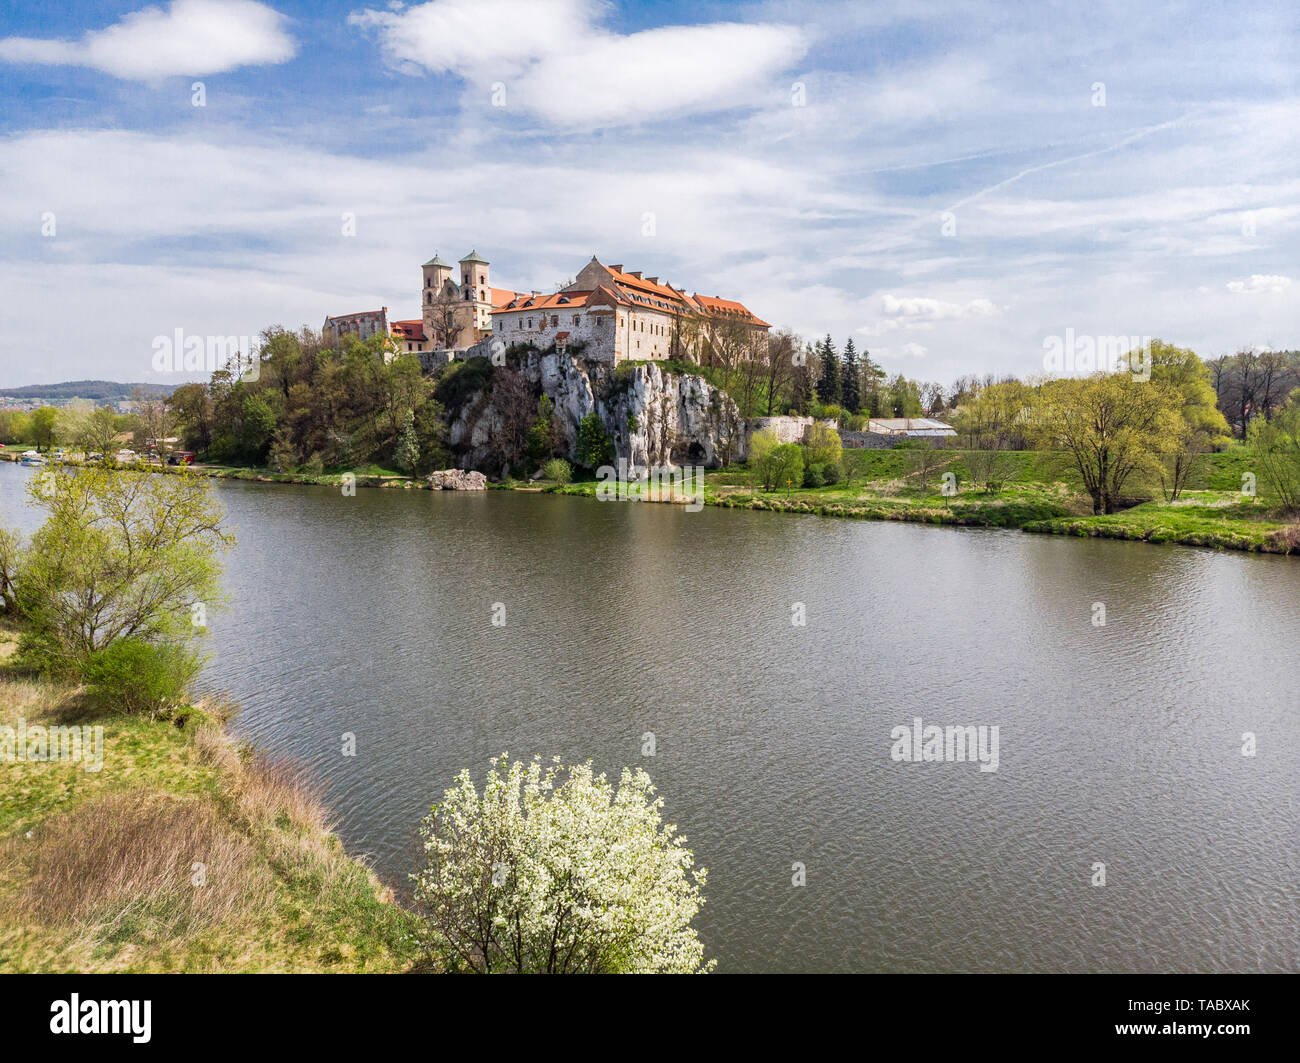 Aerial view of Benedictine abbey, monastery and Saint Peter and Paul church in Tyniec near Krakow, Poland. Stock Photo